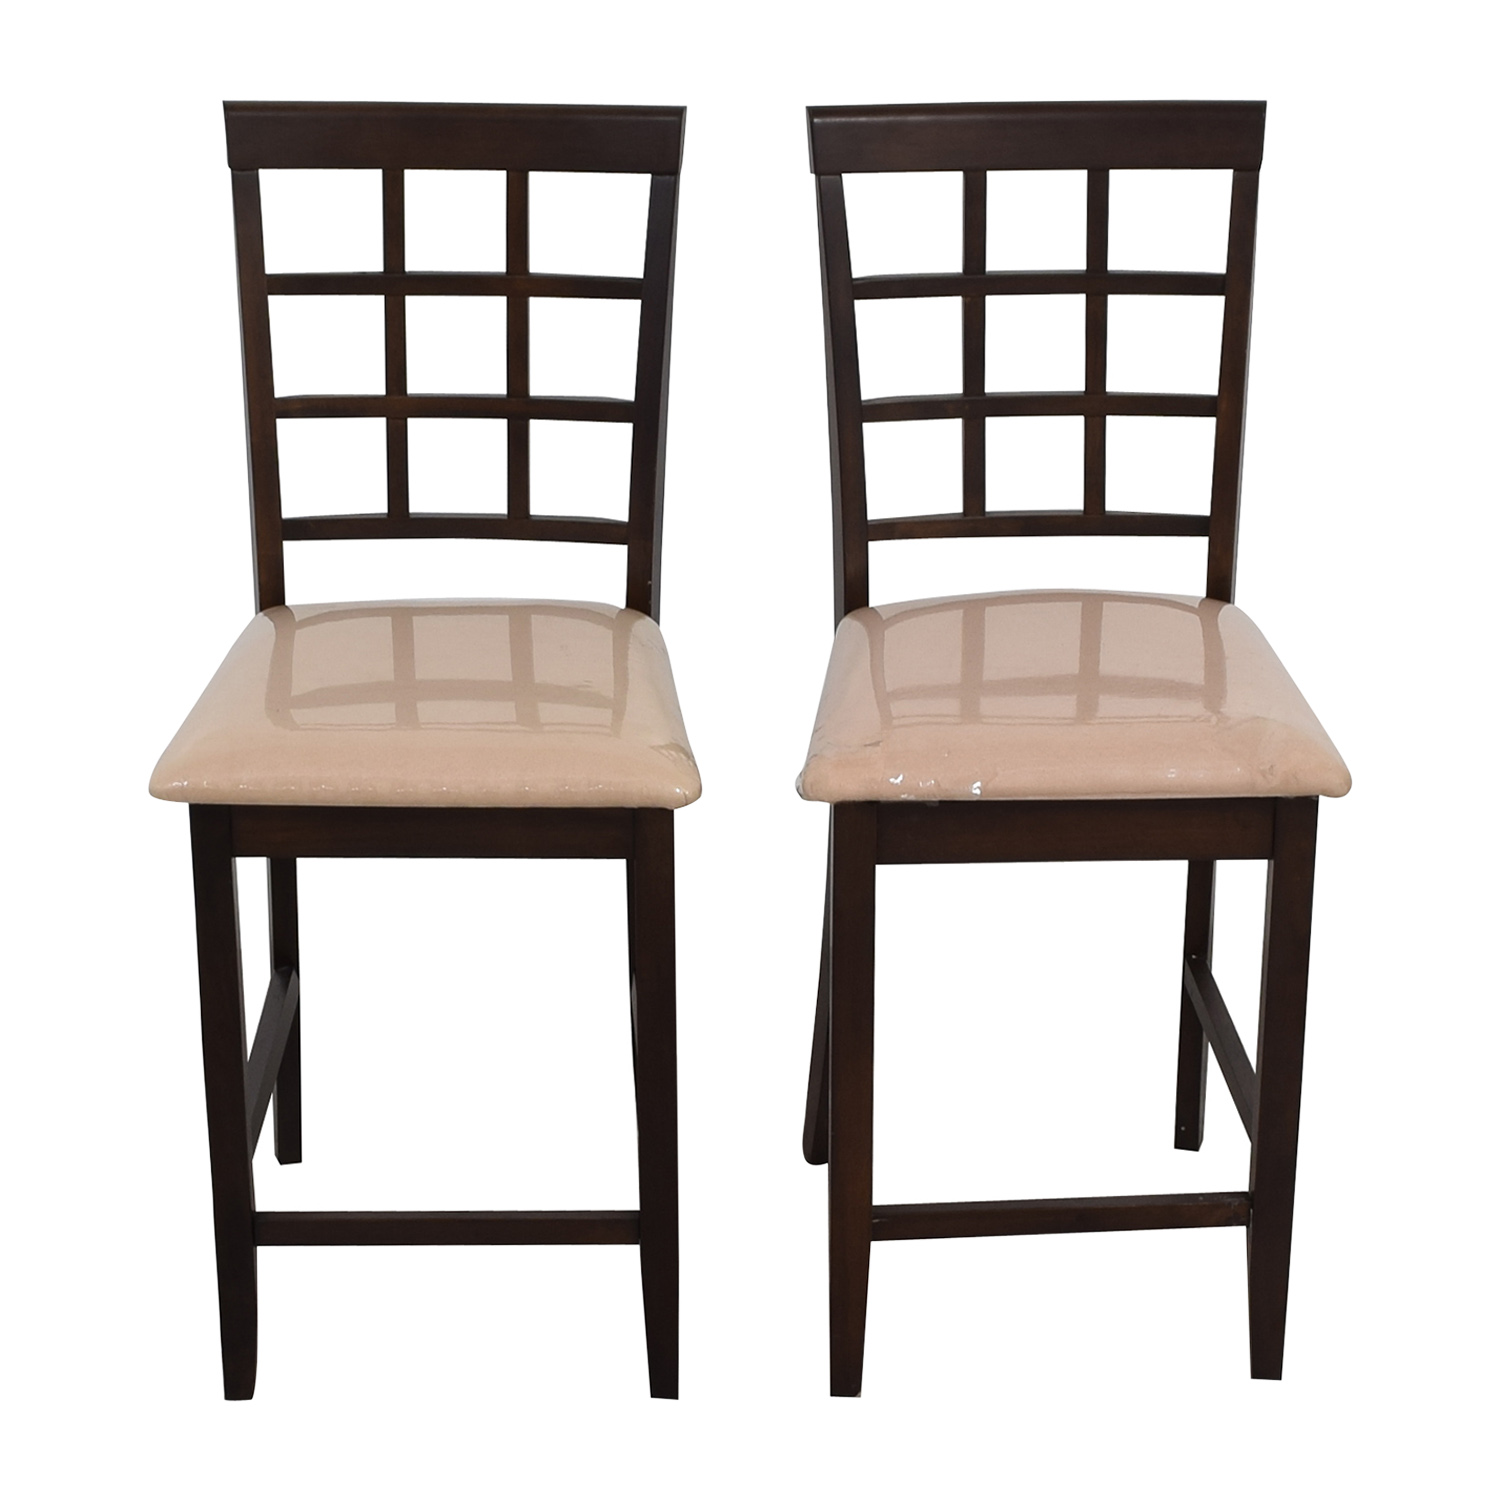 30% OFF Cappuccino Counter Height Chairs Chairs